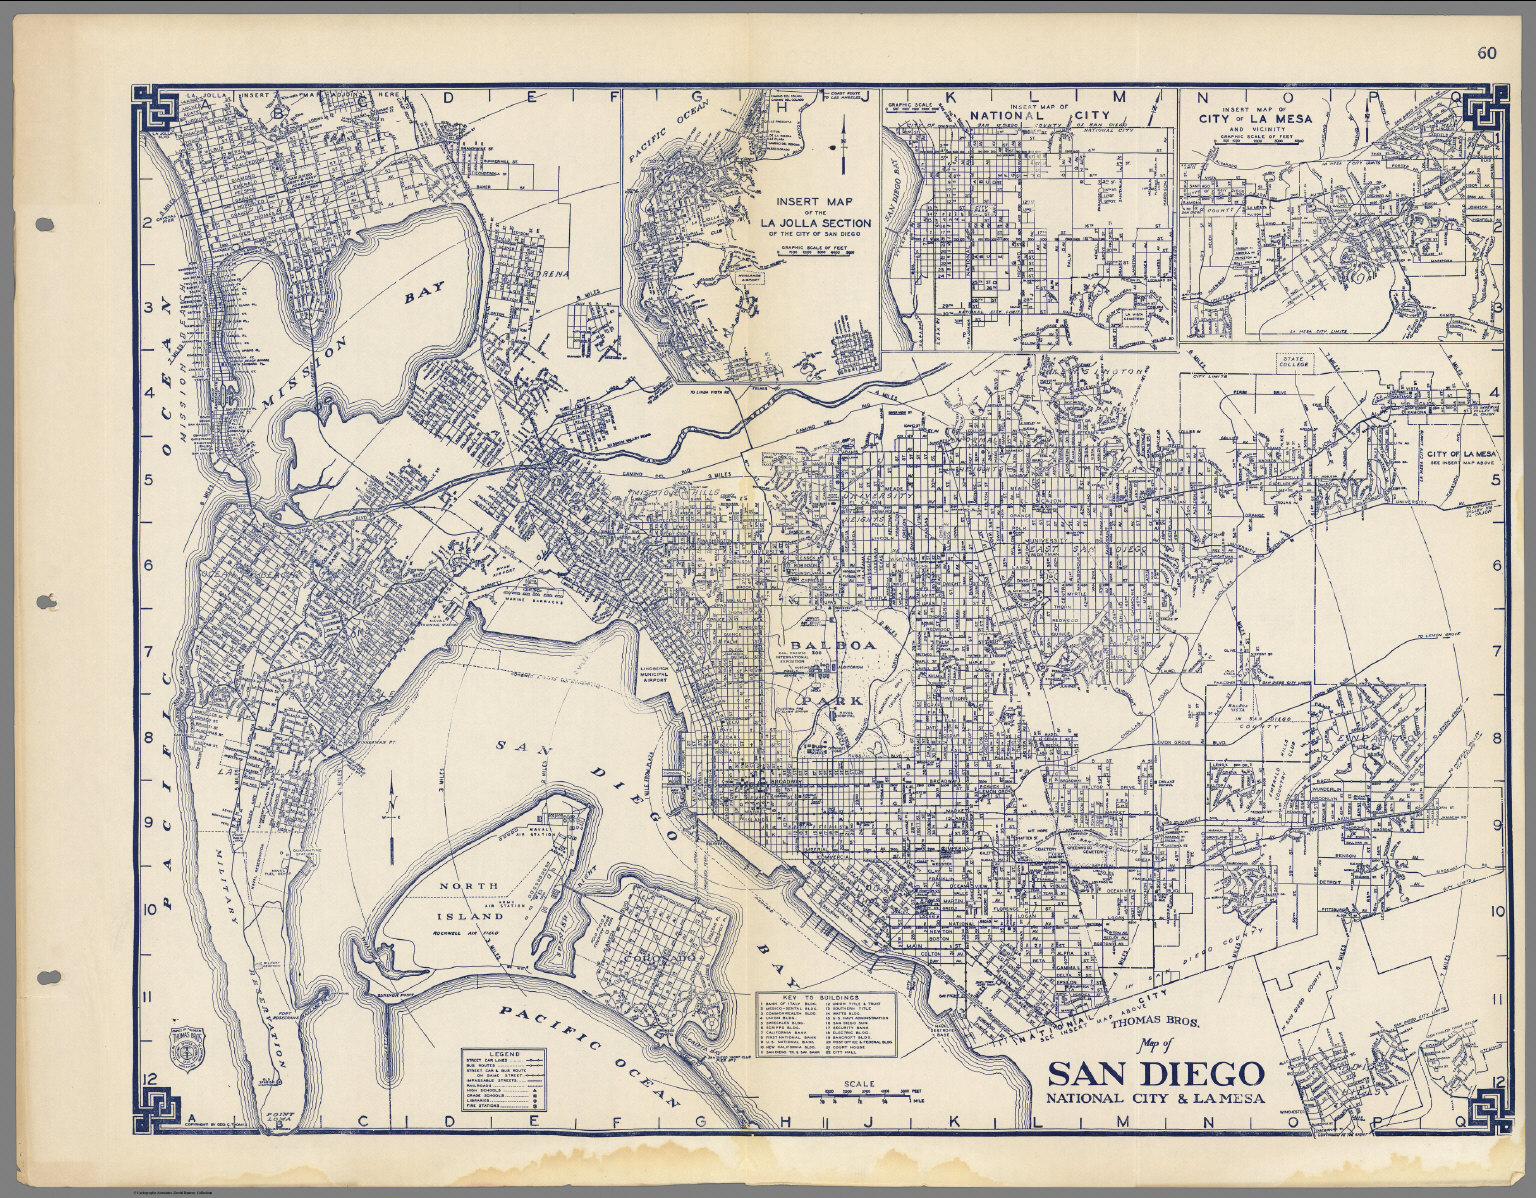 San Diego Map City.Thomas Bros Map Of San Diego National City La Mesa California